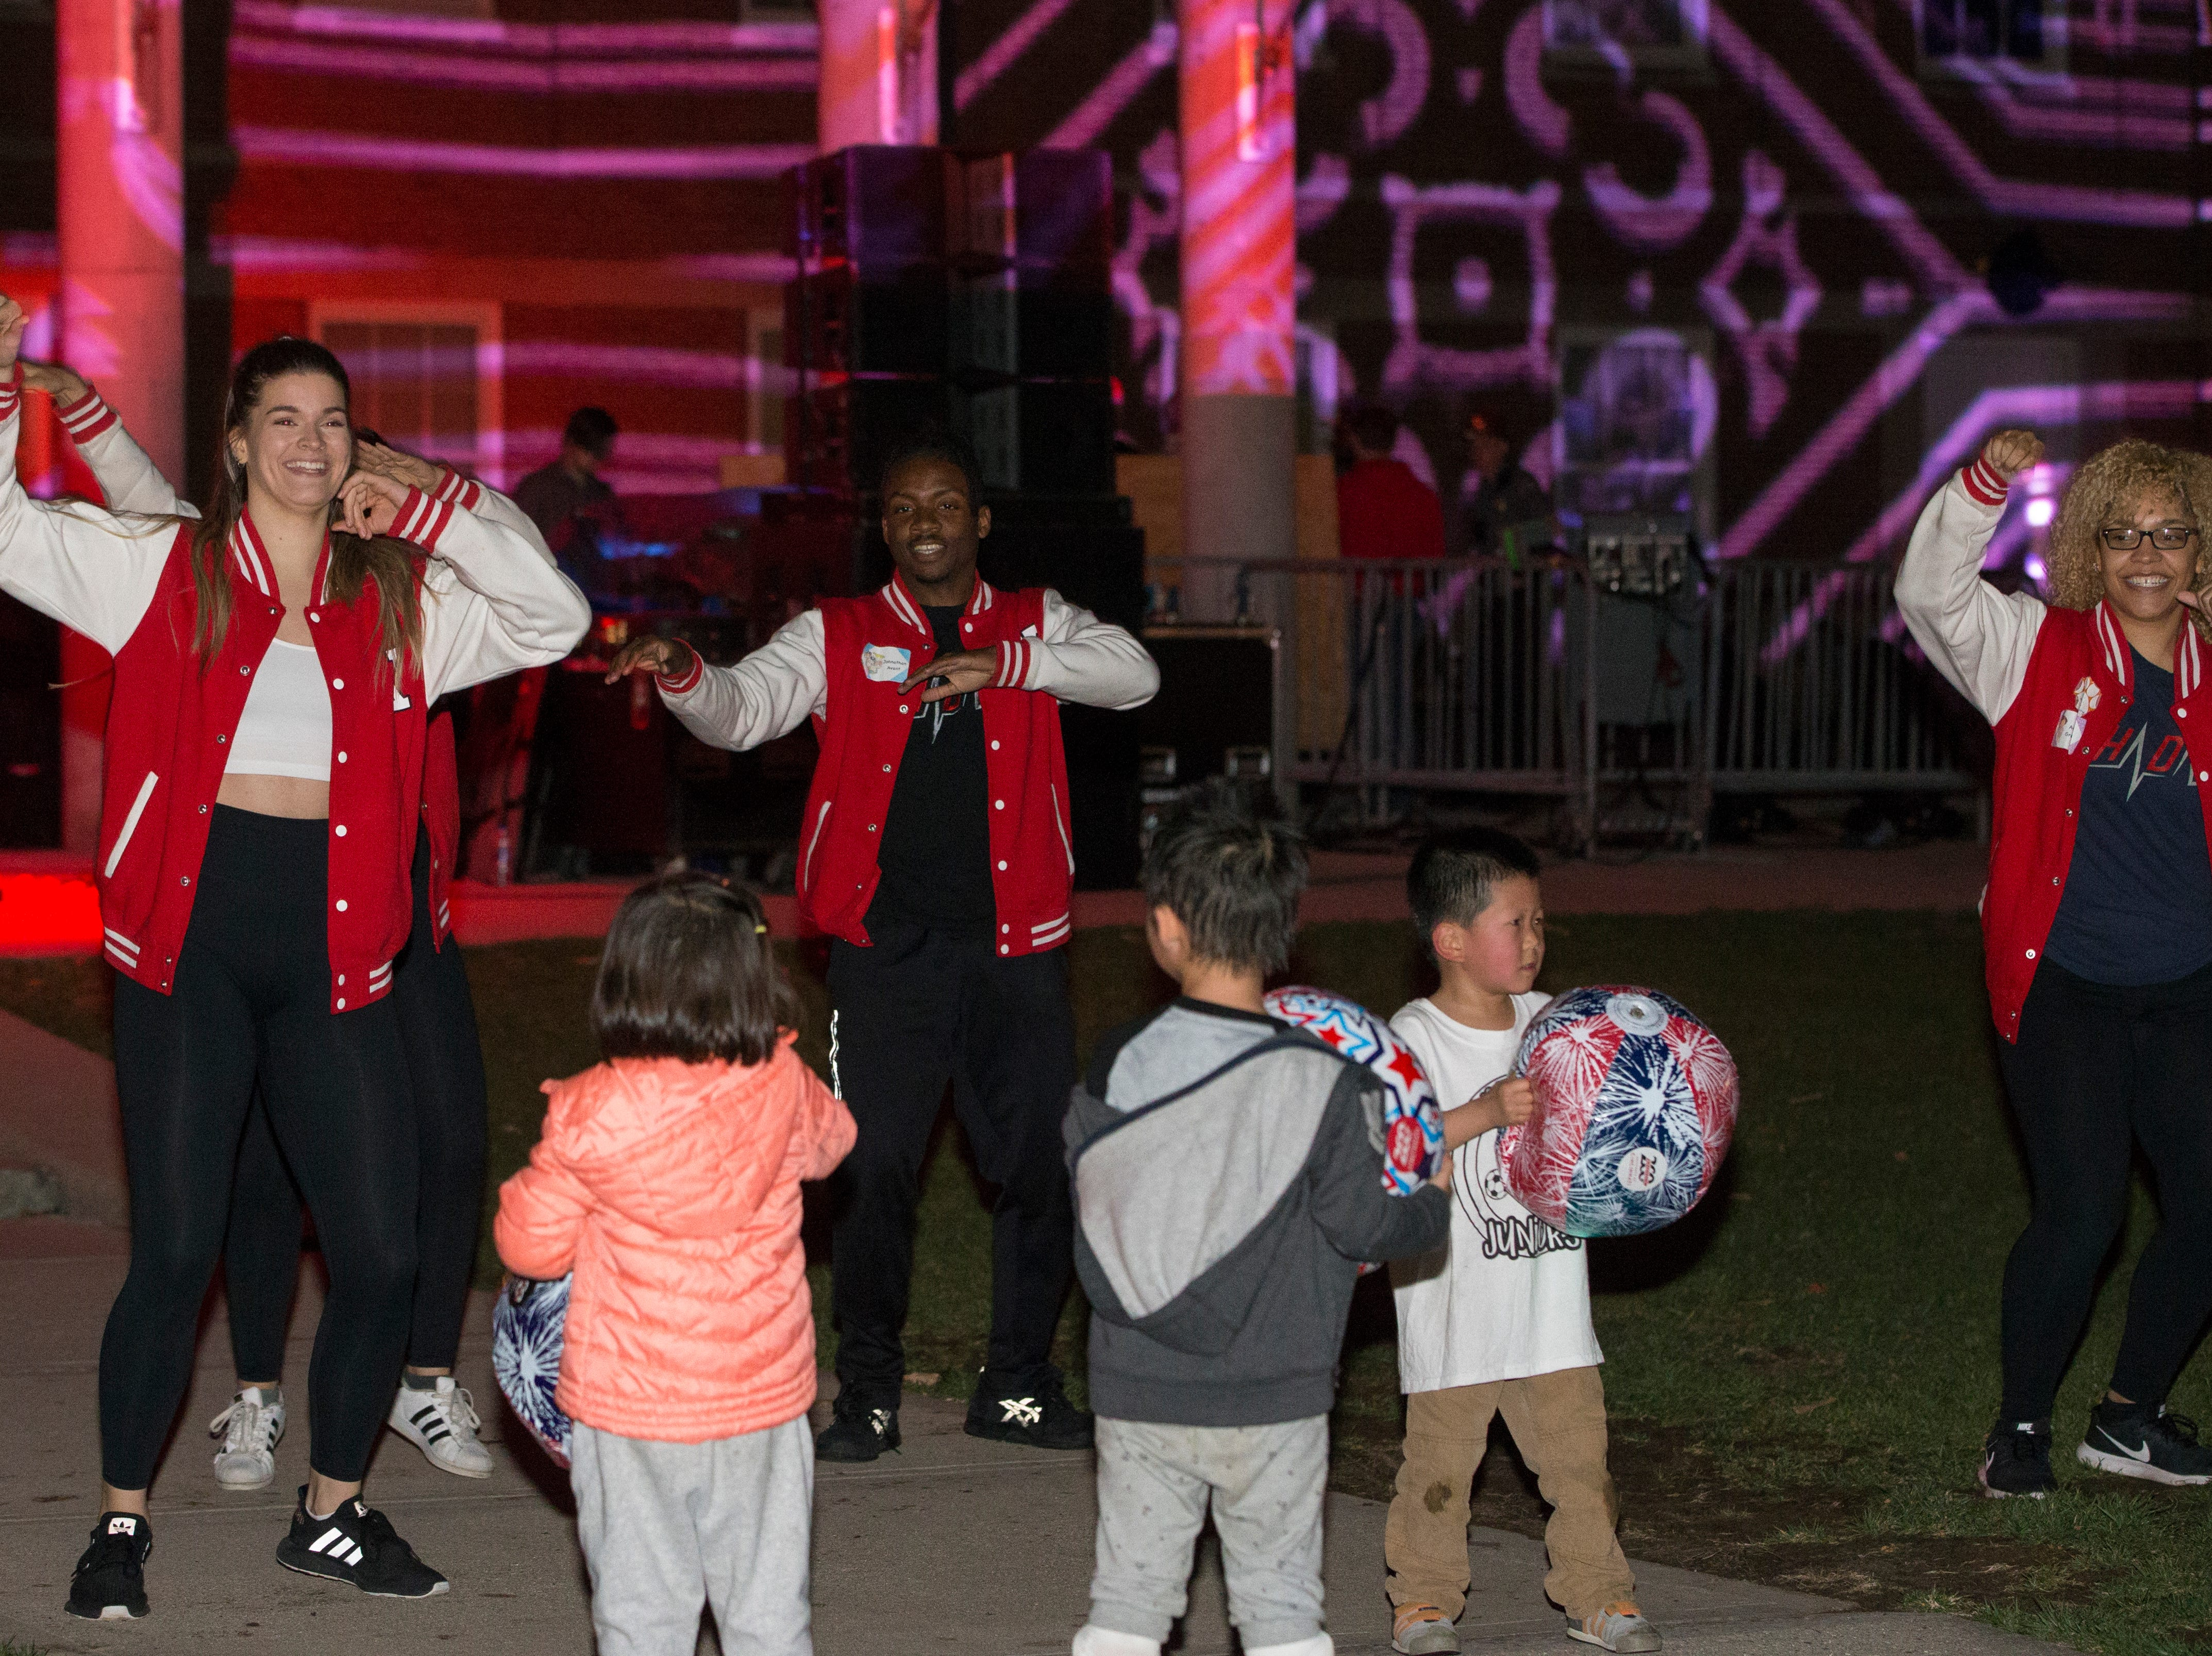 The Bollywood dancers performed during Momentum Projection-Mapping Light Show Saturday April 6, 2019 at McMicken Commons on the campus of the University of Cincinnati. University of Cincinnati/Joseph Fuqua II